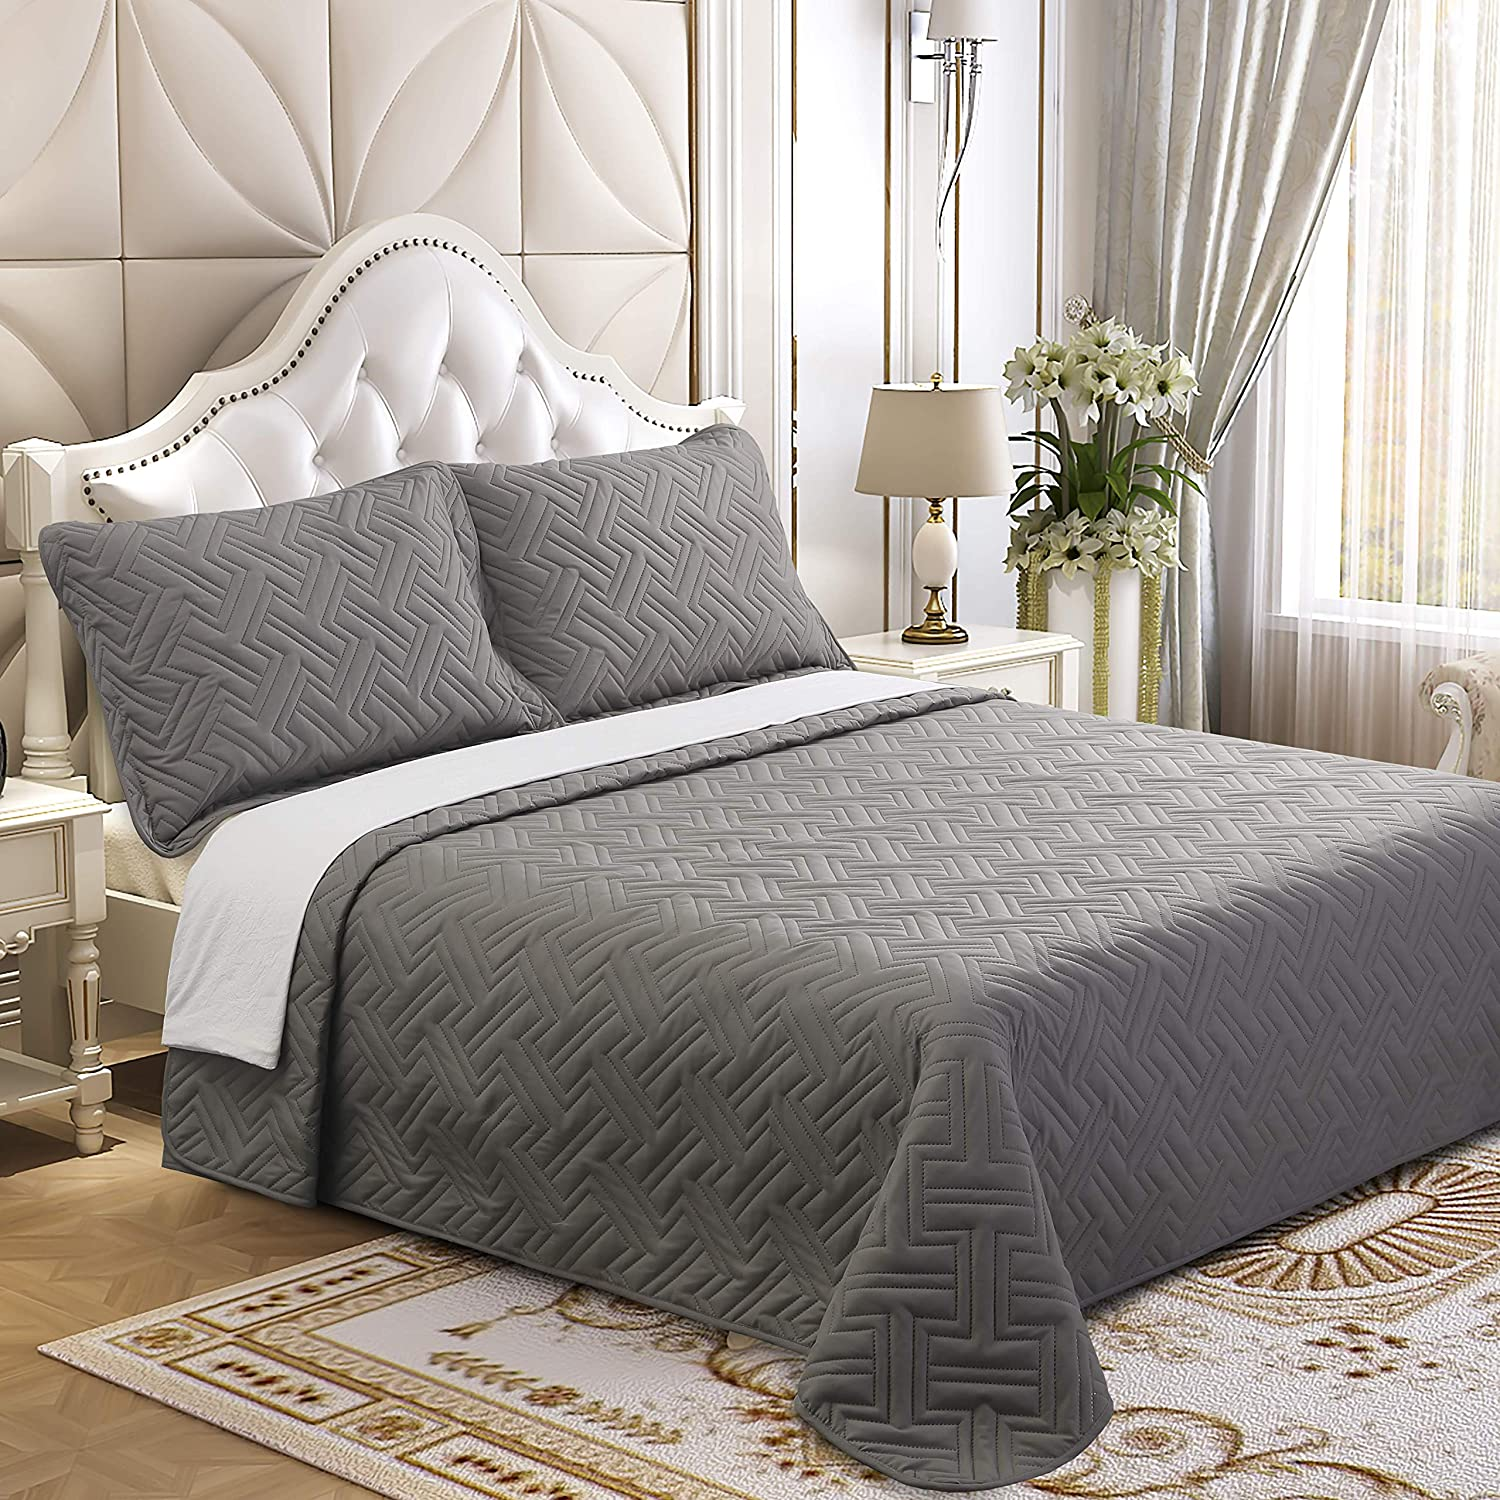 Lorient Home Brushed Microfiber Embossed 3 Piece Full/Queen Lightweight Quilt Set for Coverlet or Blanket Silver Bedding, Multi